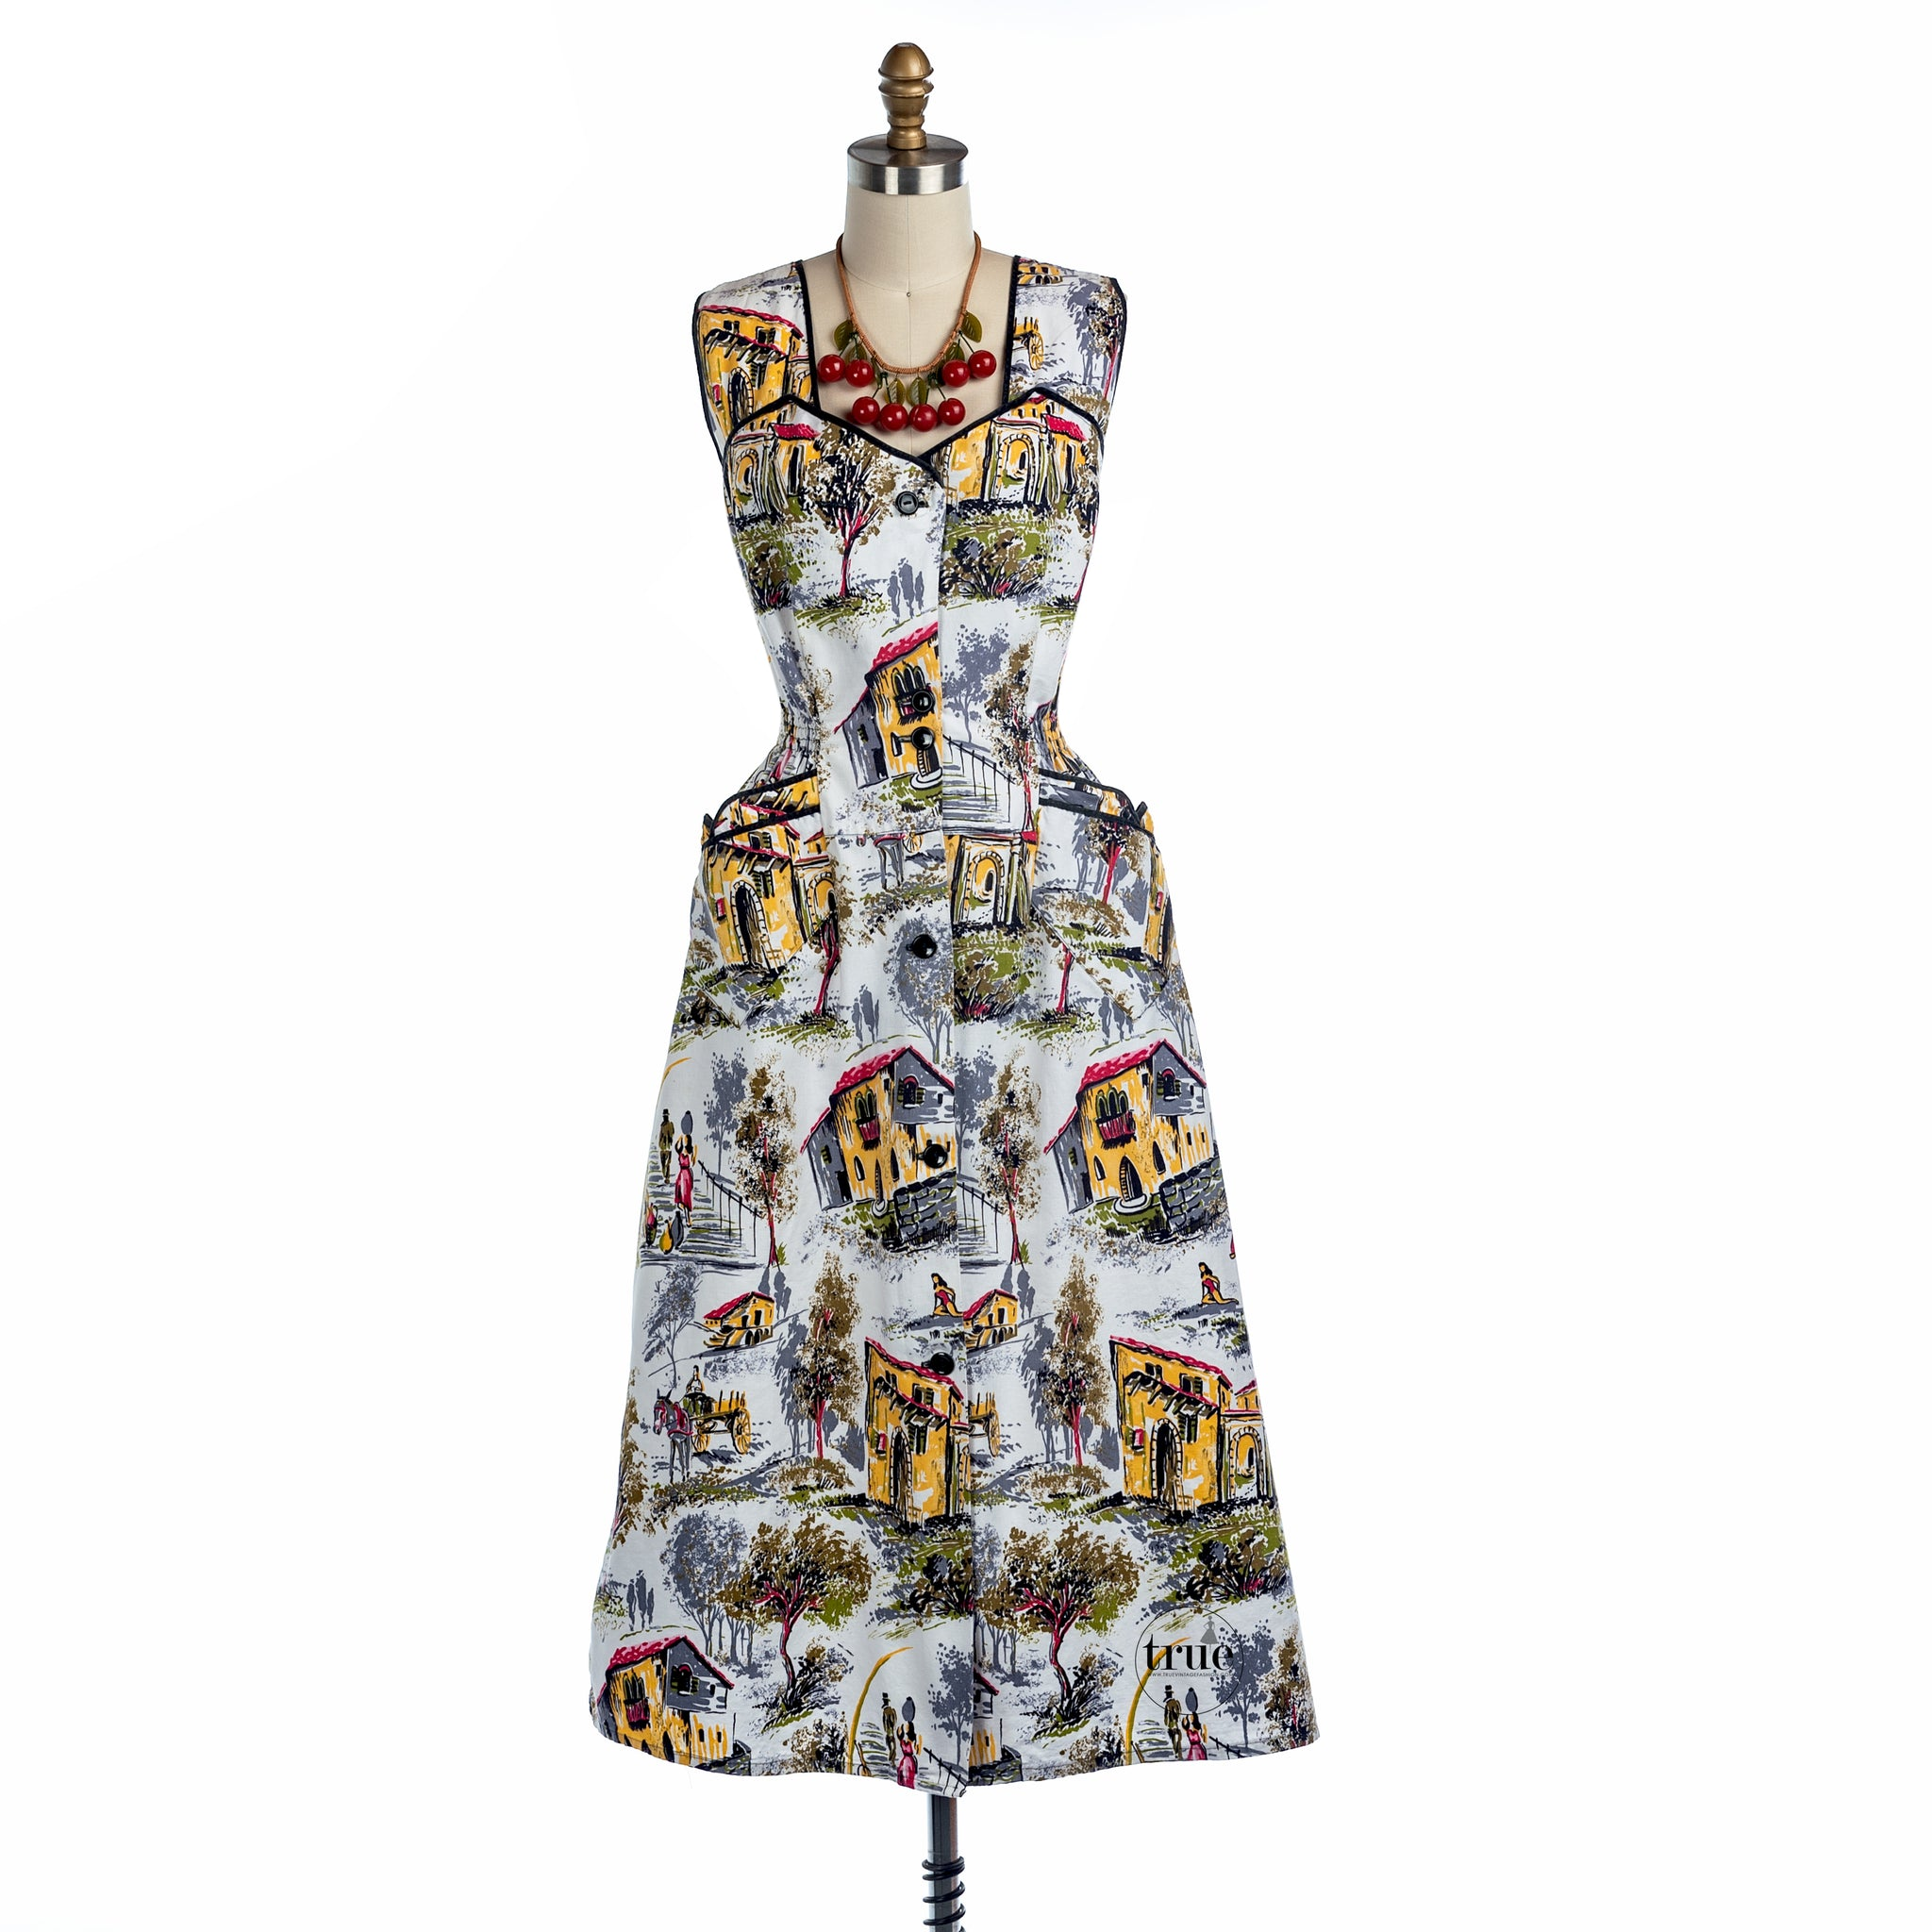 1940's novelty print sun dress